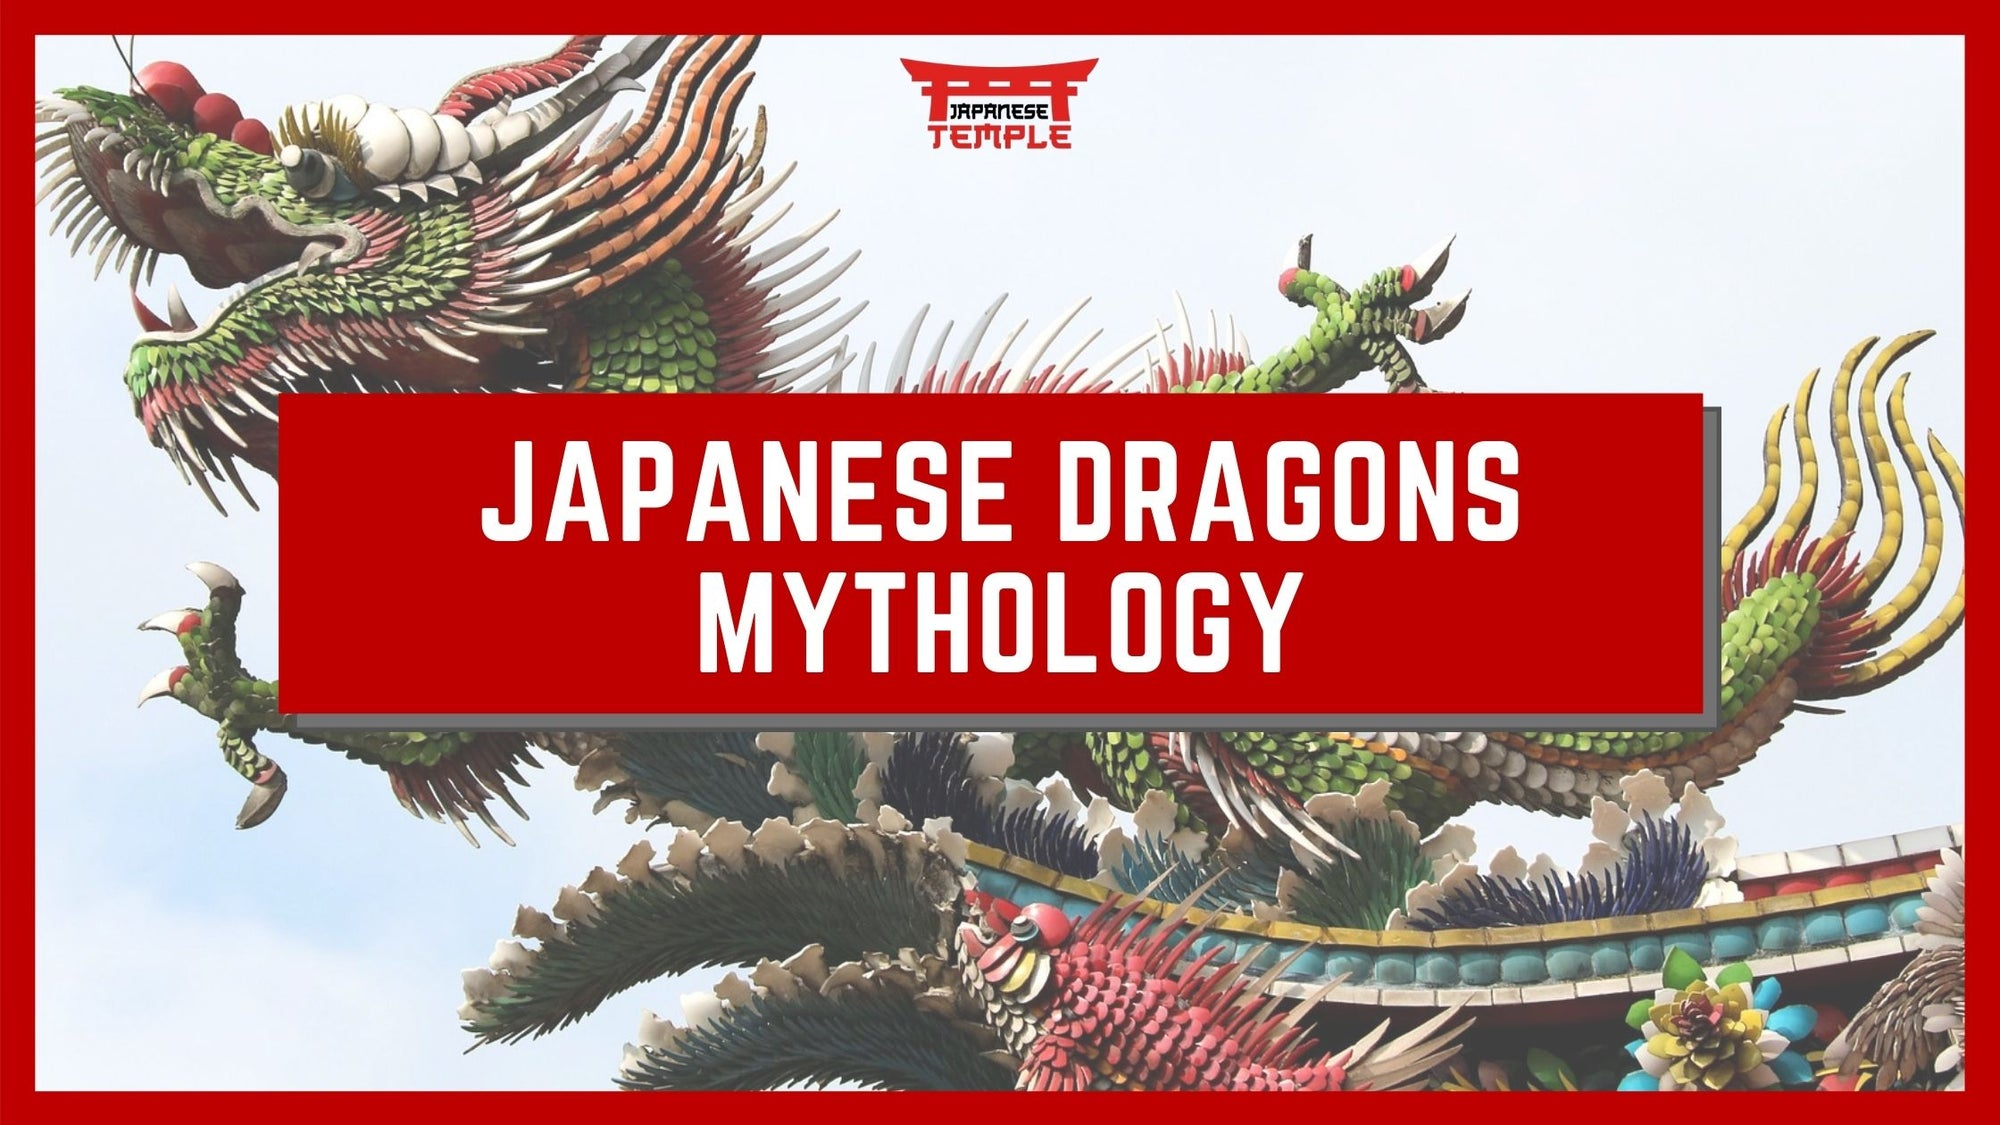 Japanese dragon mythology